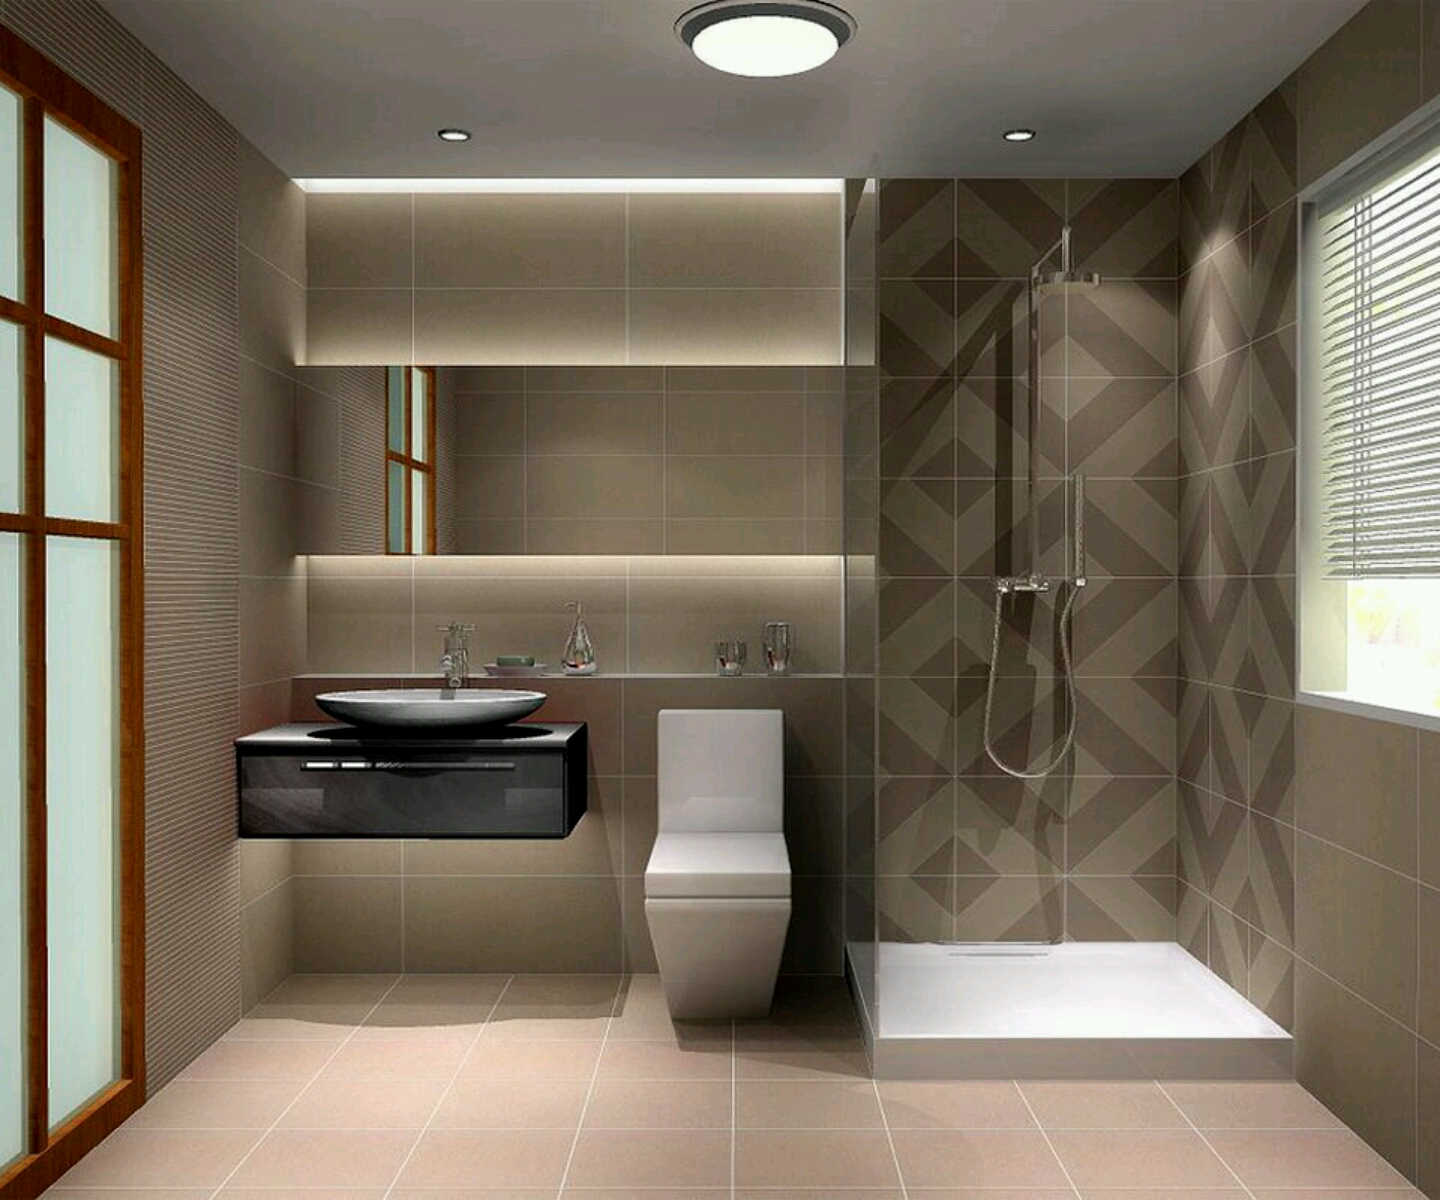 Small modern bathroom design 2017 grasscloth wallpaper for Small bathroom remodel design ideas